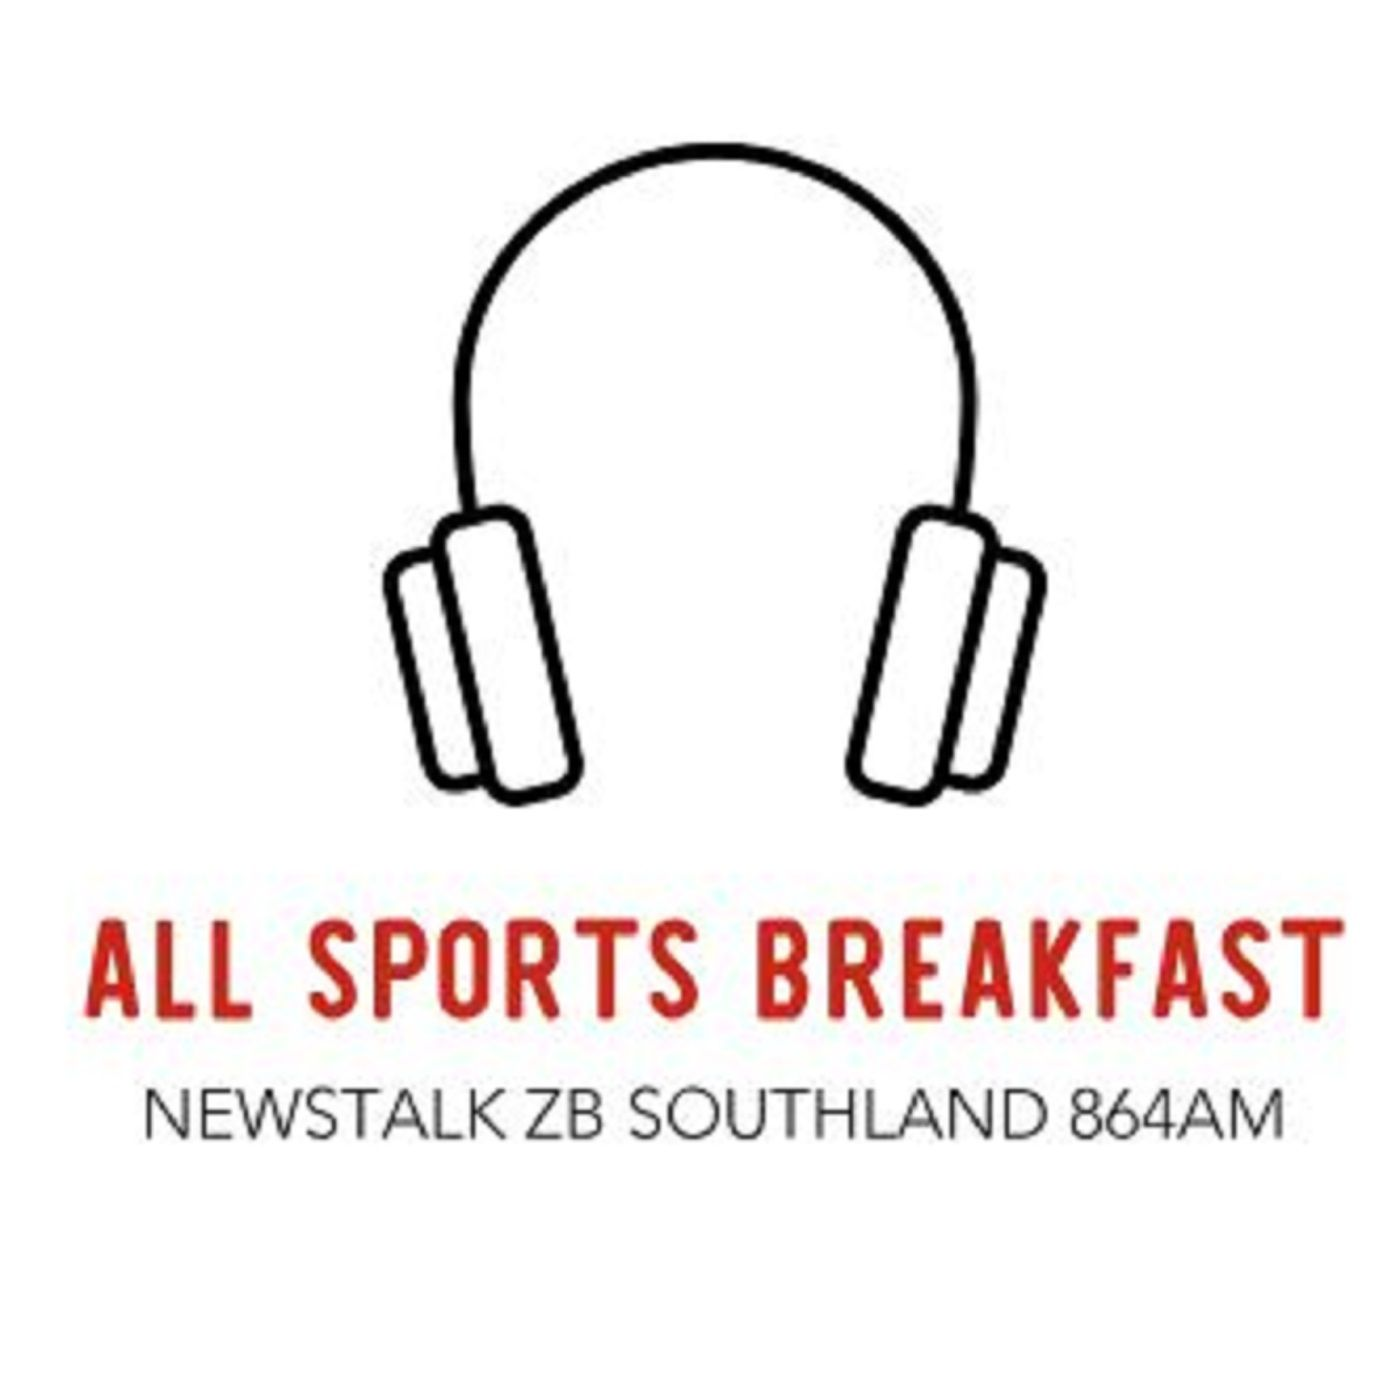 The Best of Southland's All Sports Breakfast